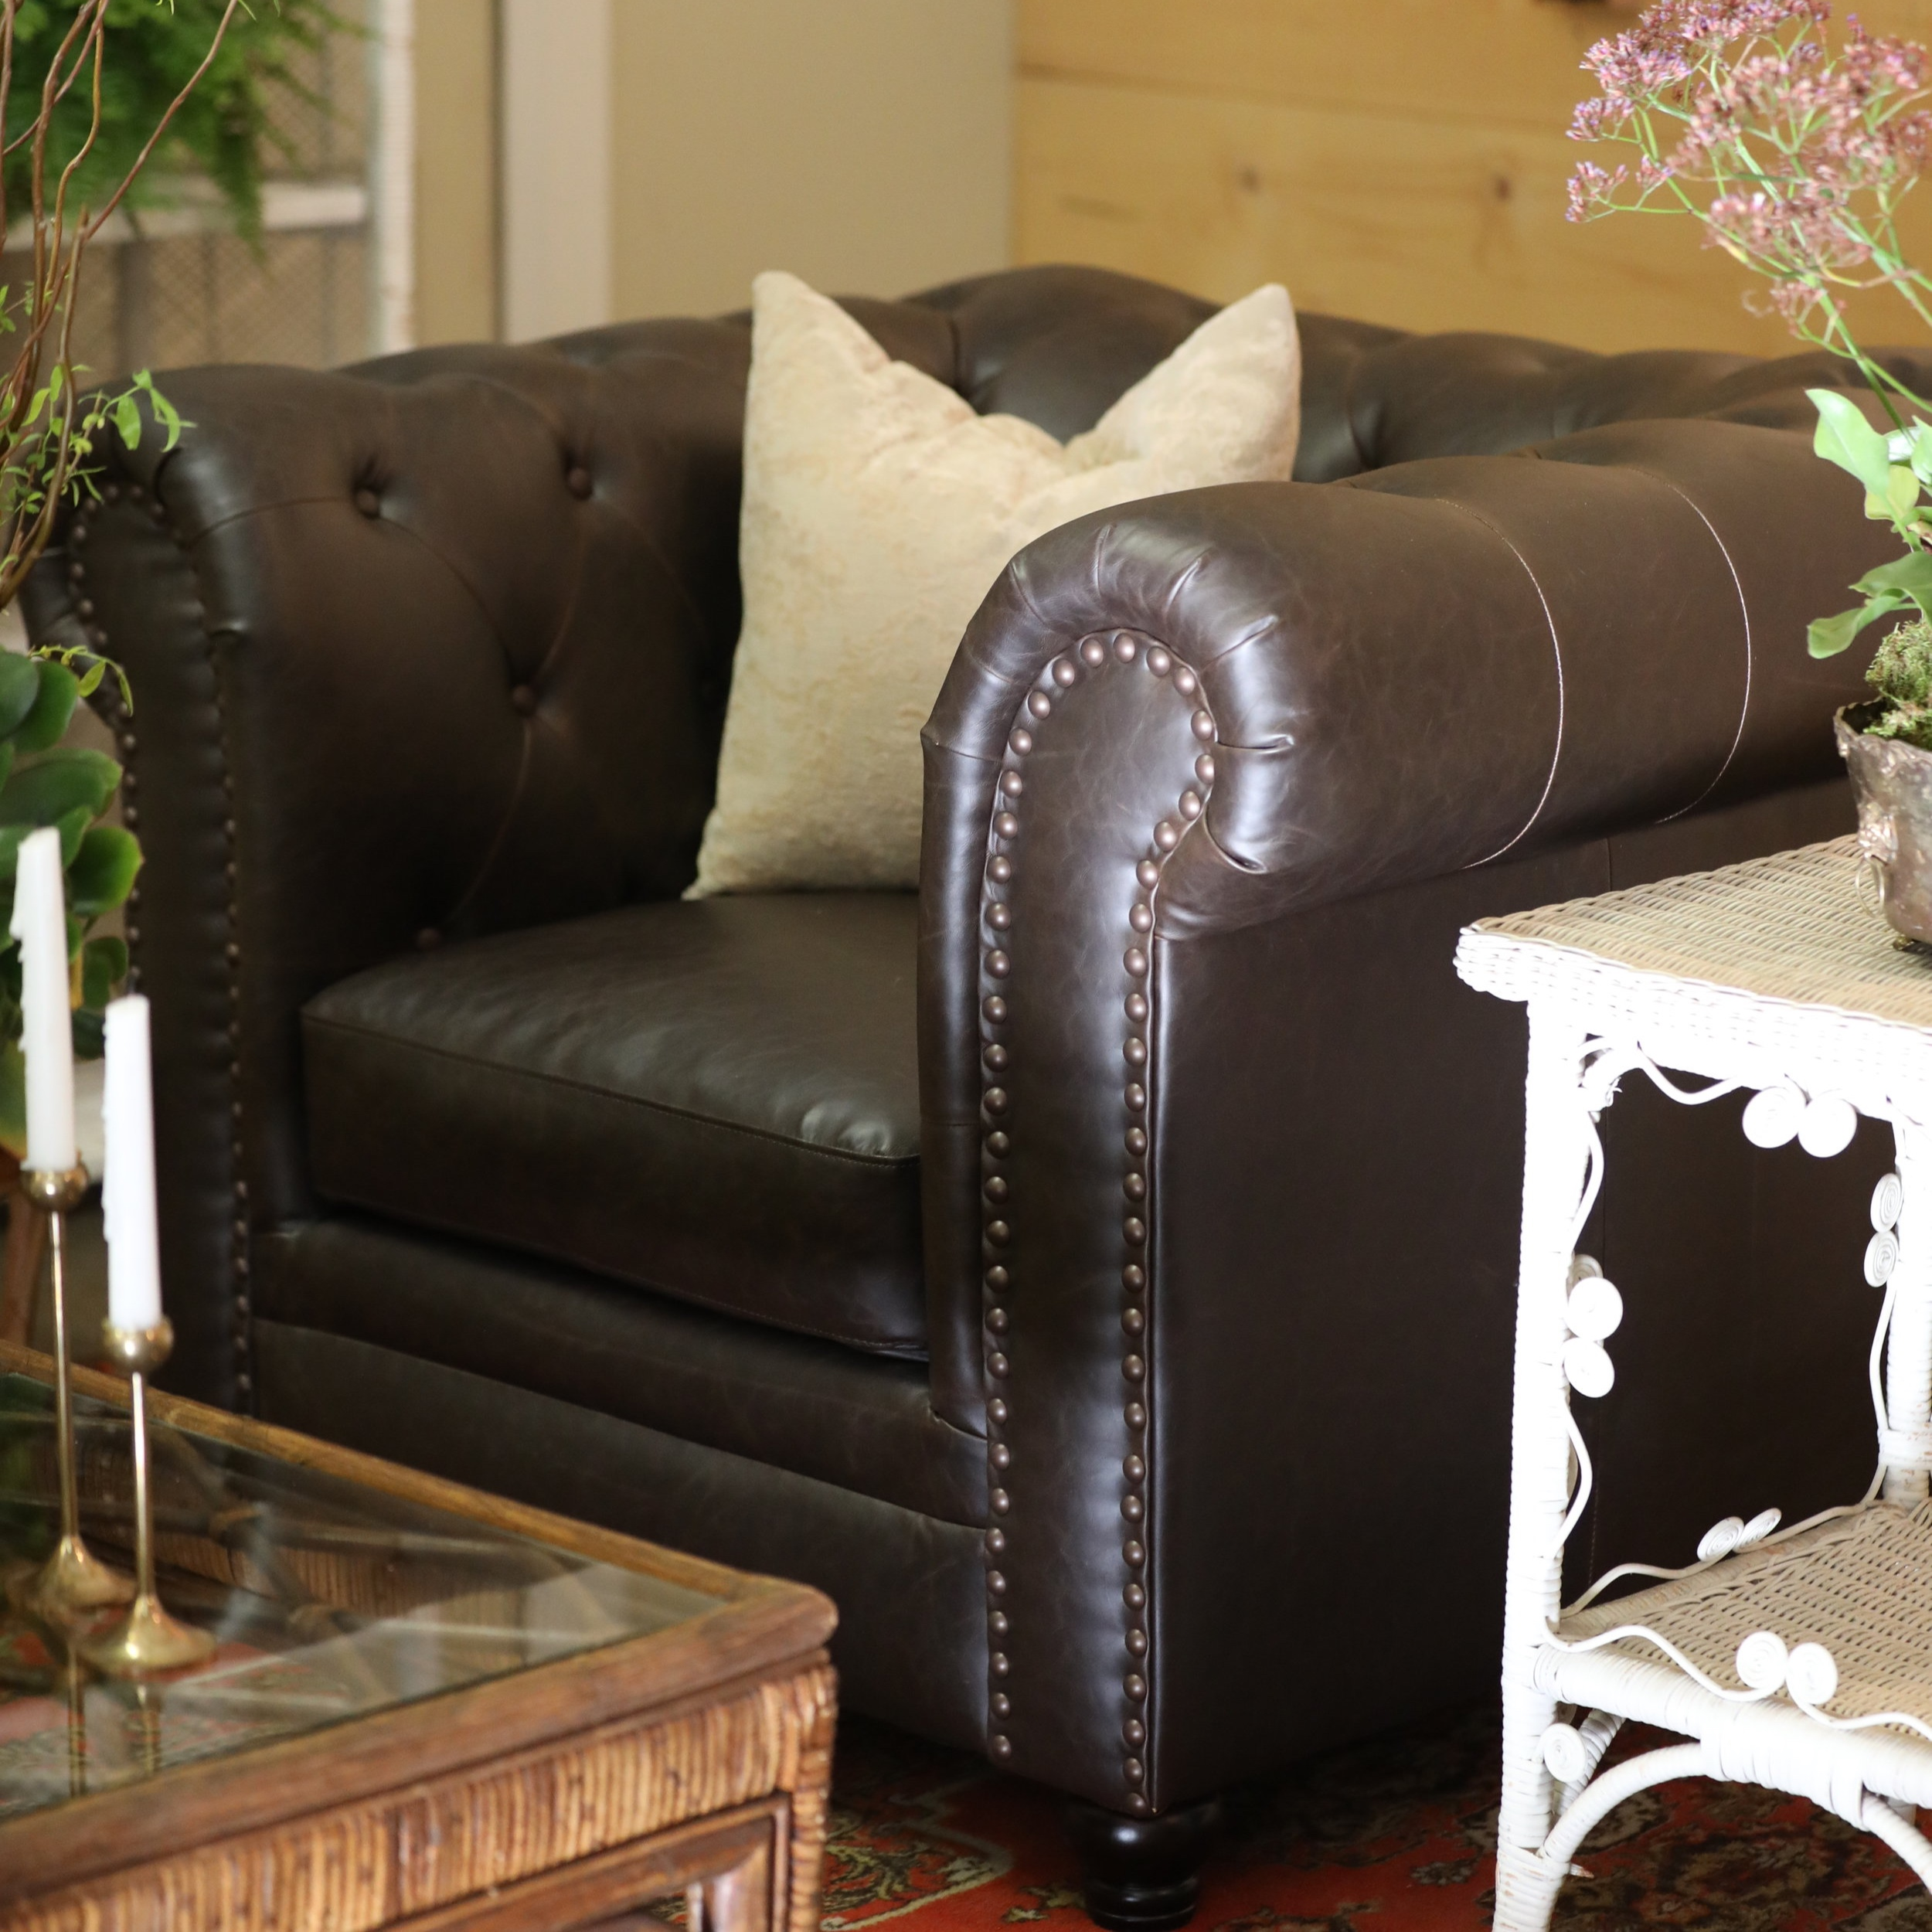 Renaldo   Brown leather square chair with a tufted back and arms.